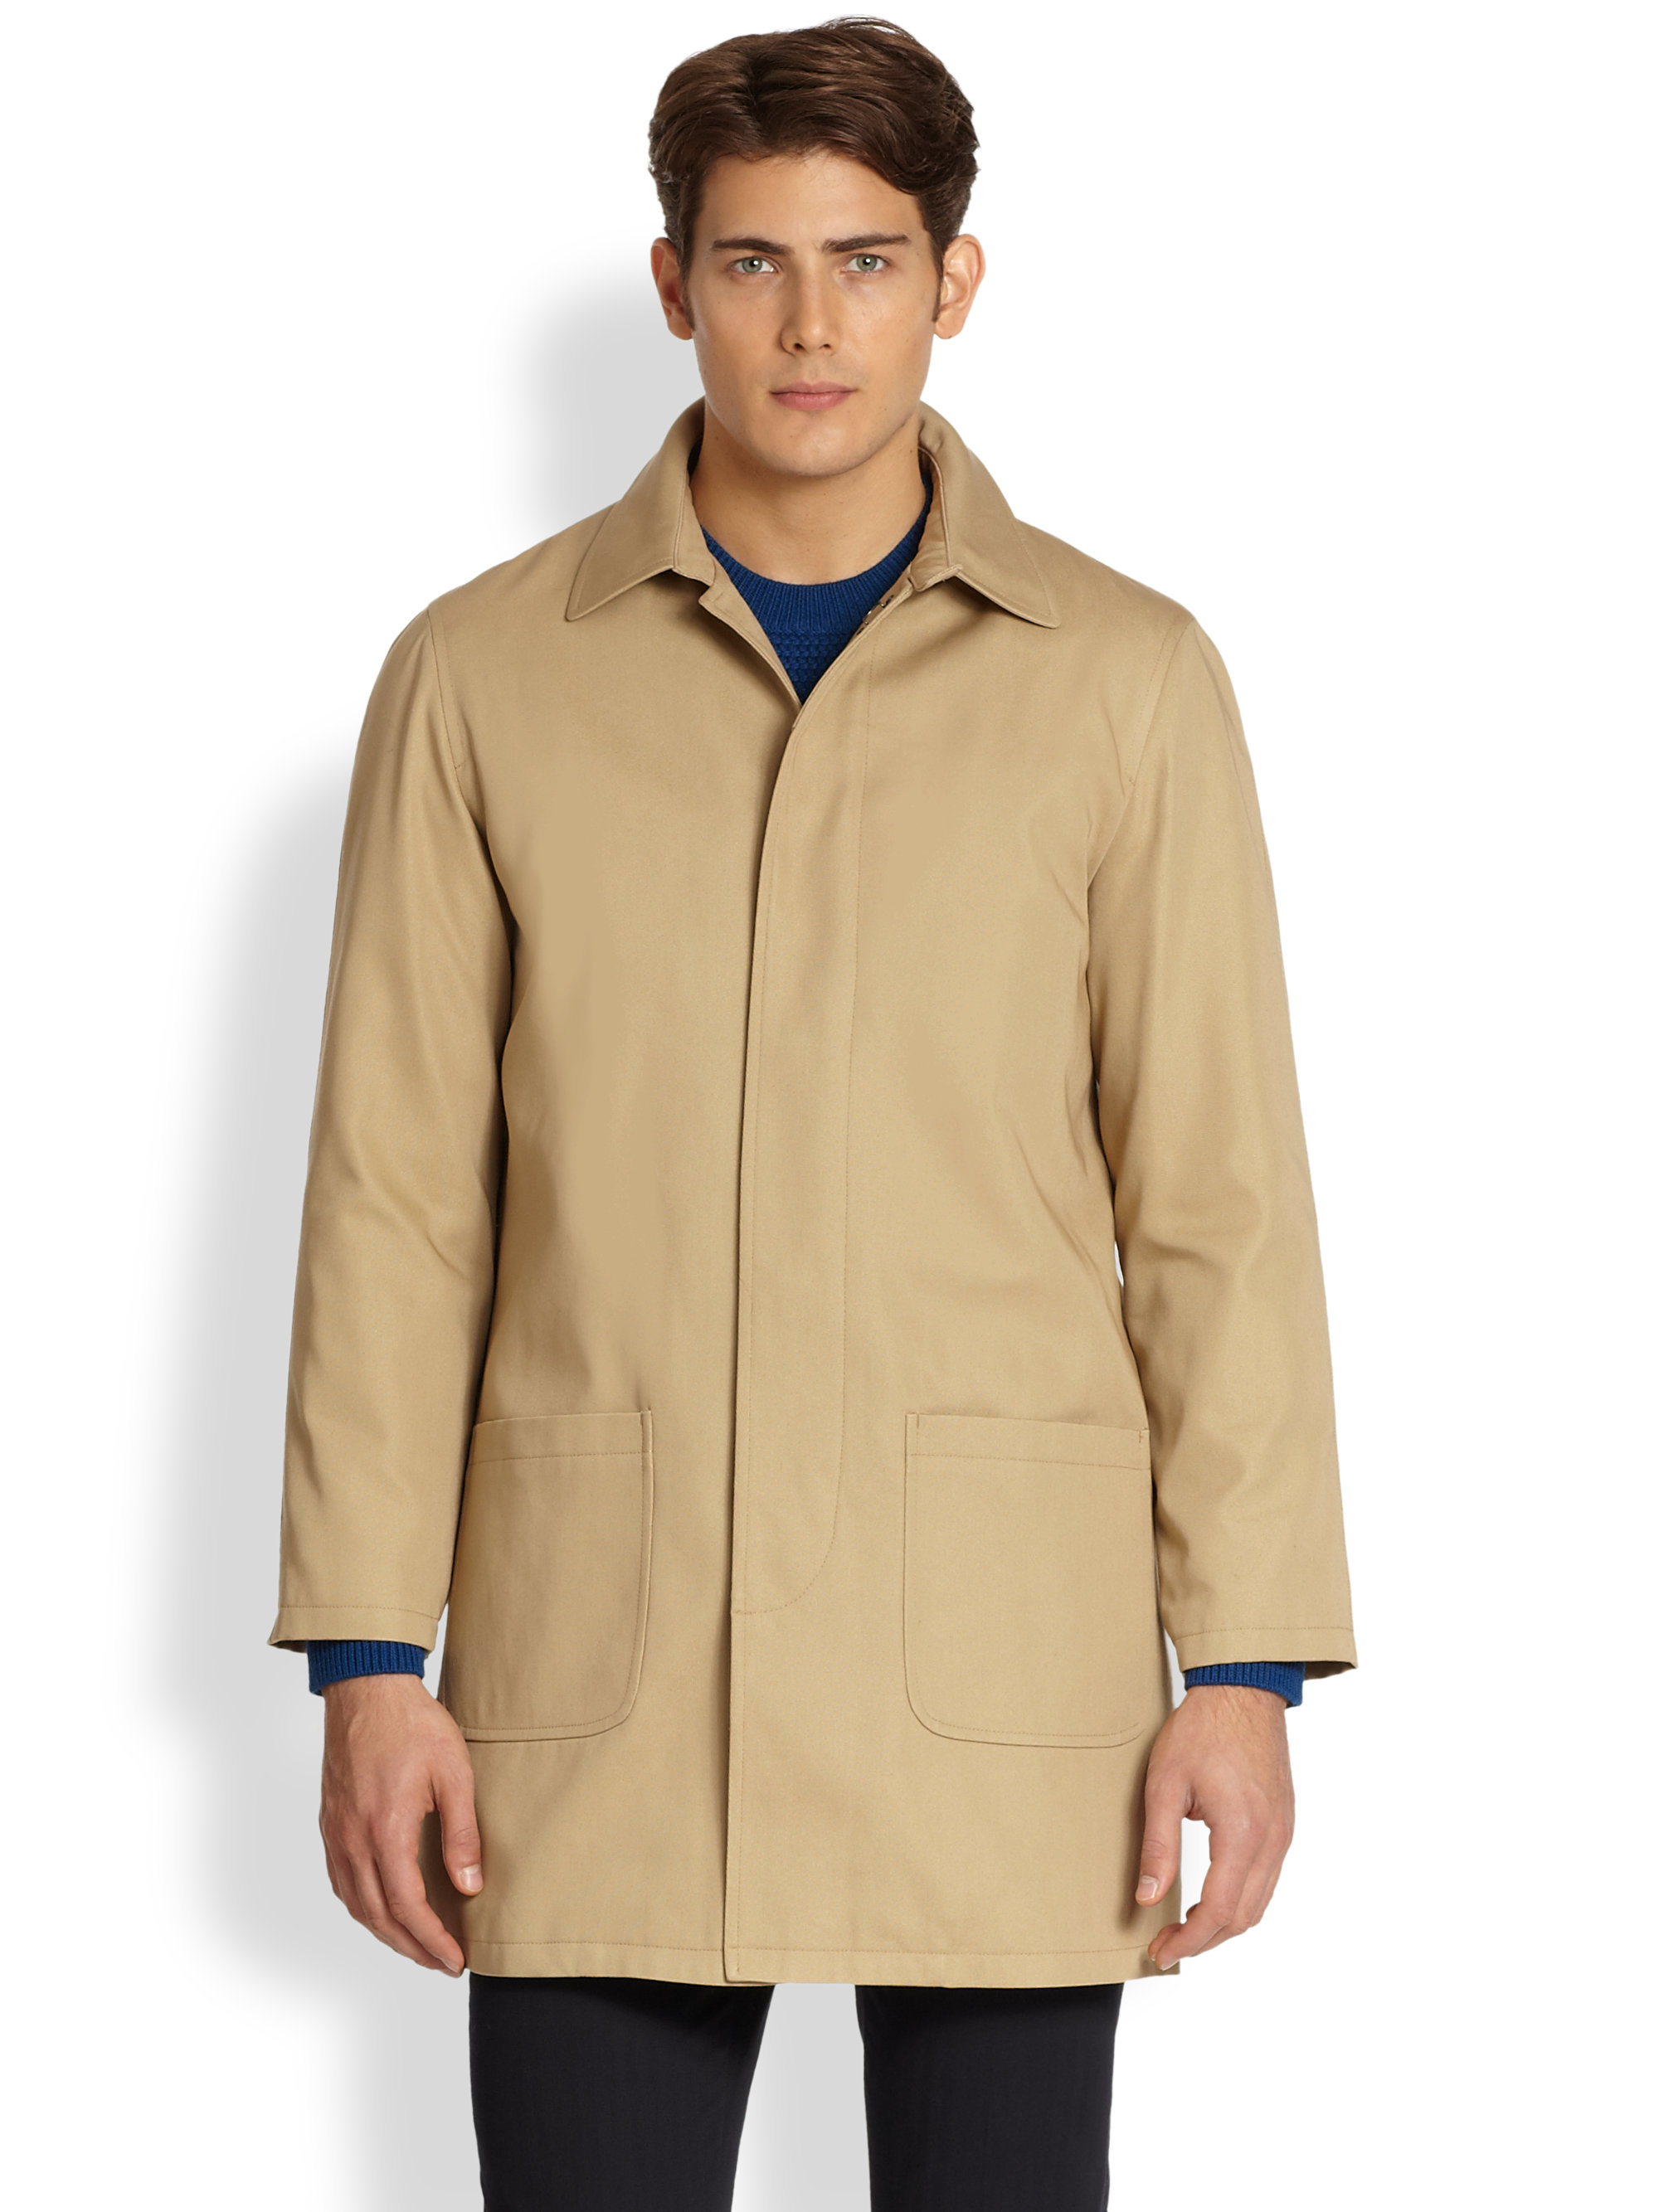 Find great deals on eBay for mac coat mens. Shop with confidence.